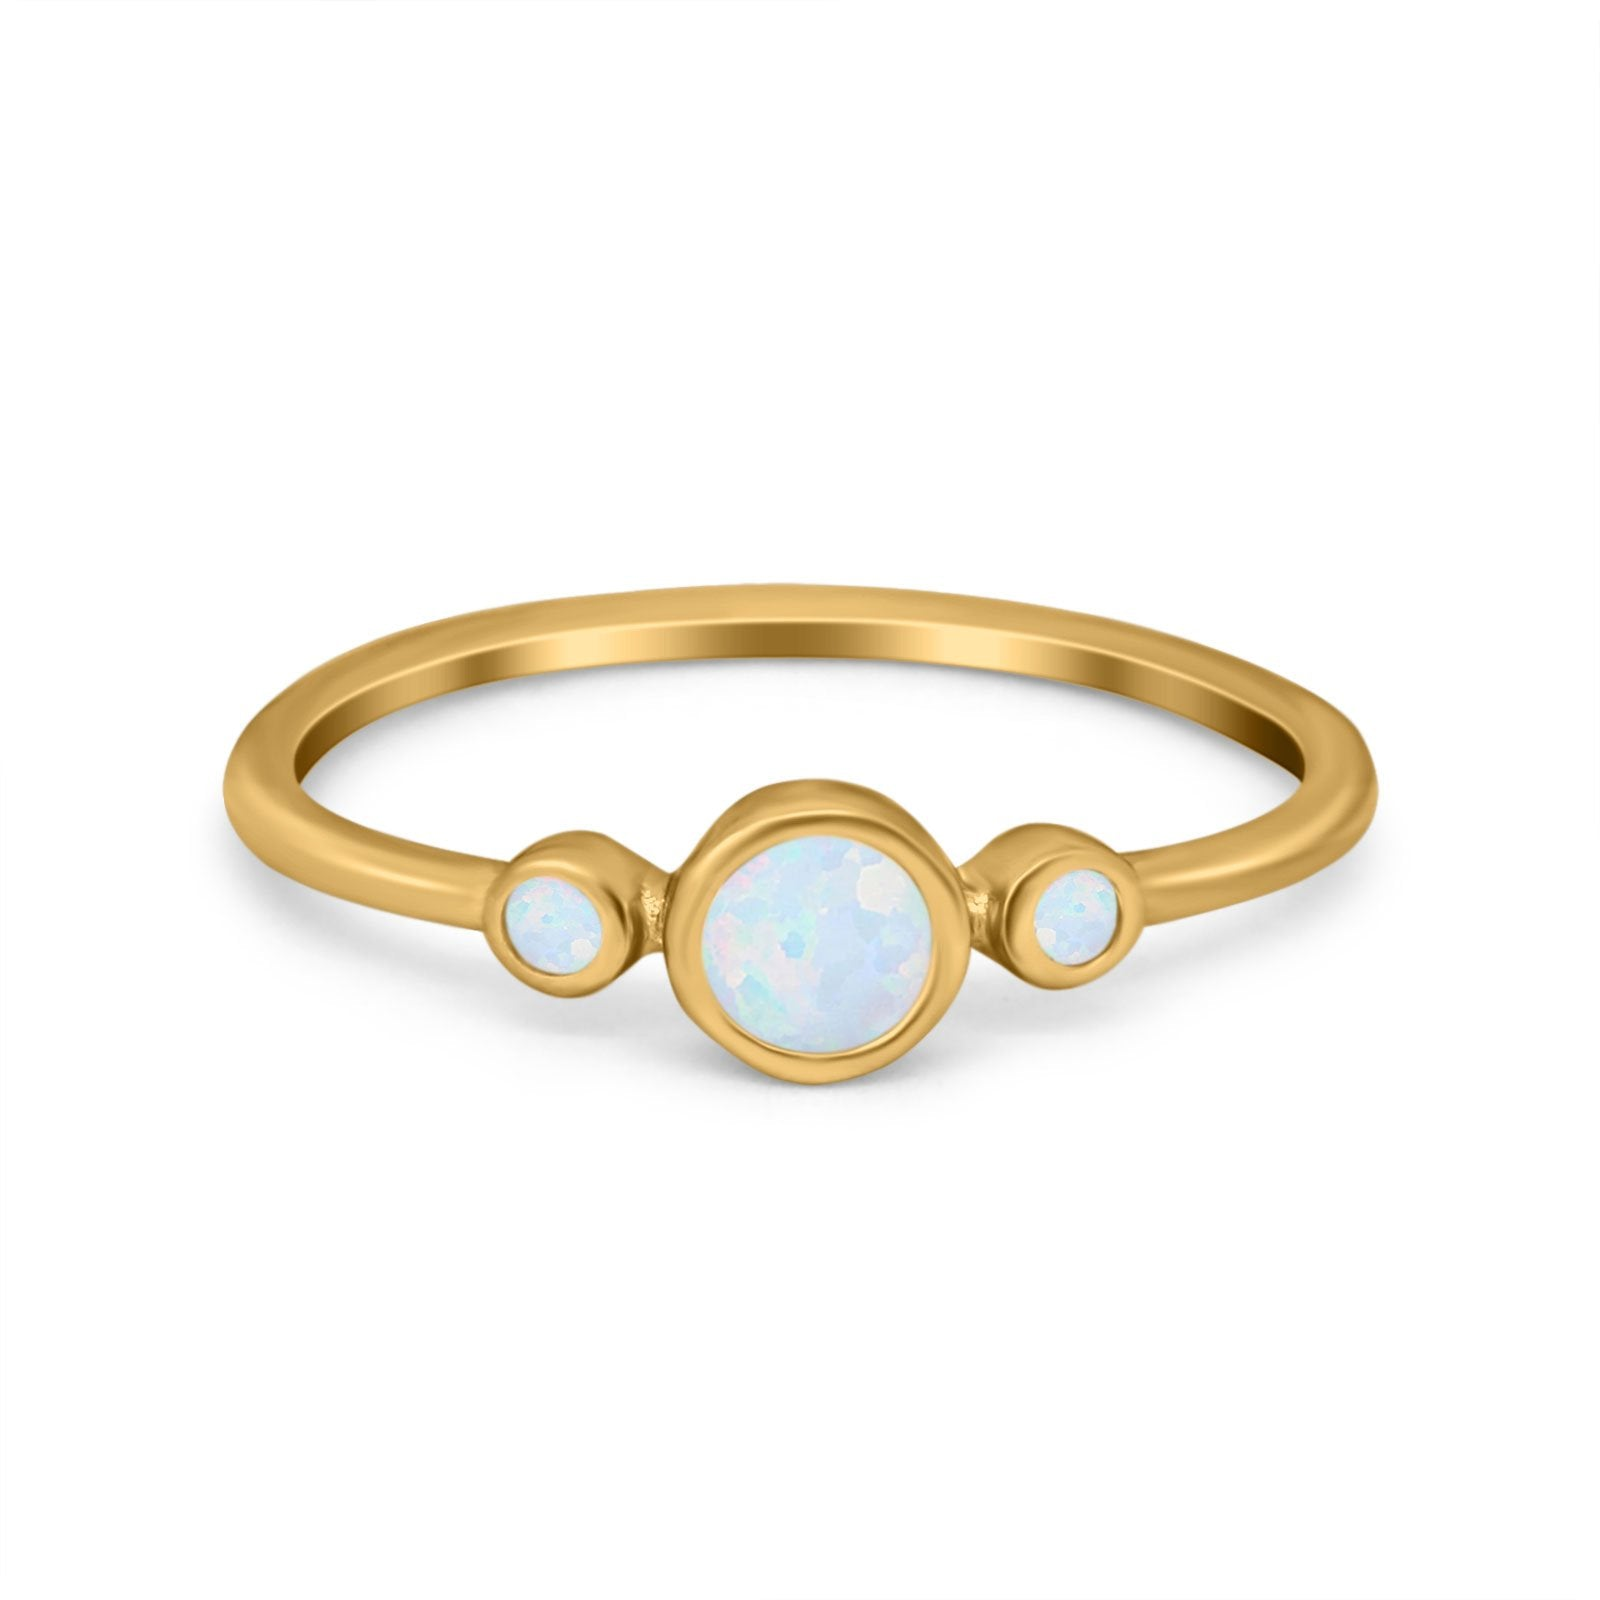 Fashion Style Band Ring Round Simulated Cubic Zirconia Opal 925 Sterling Silver